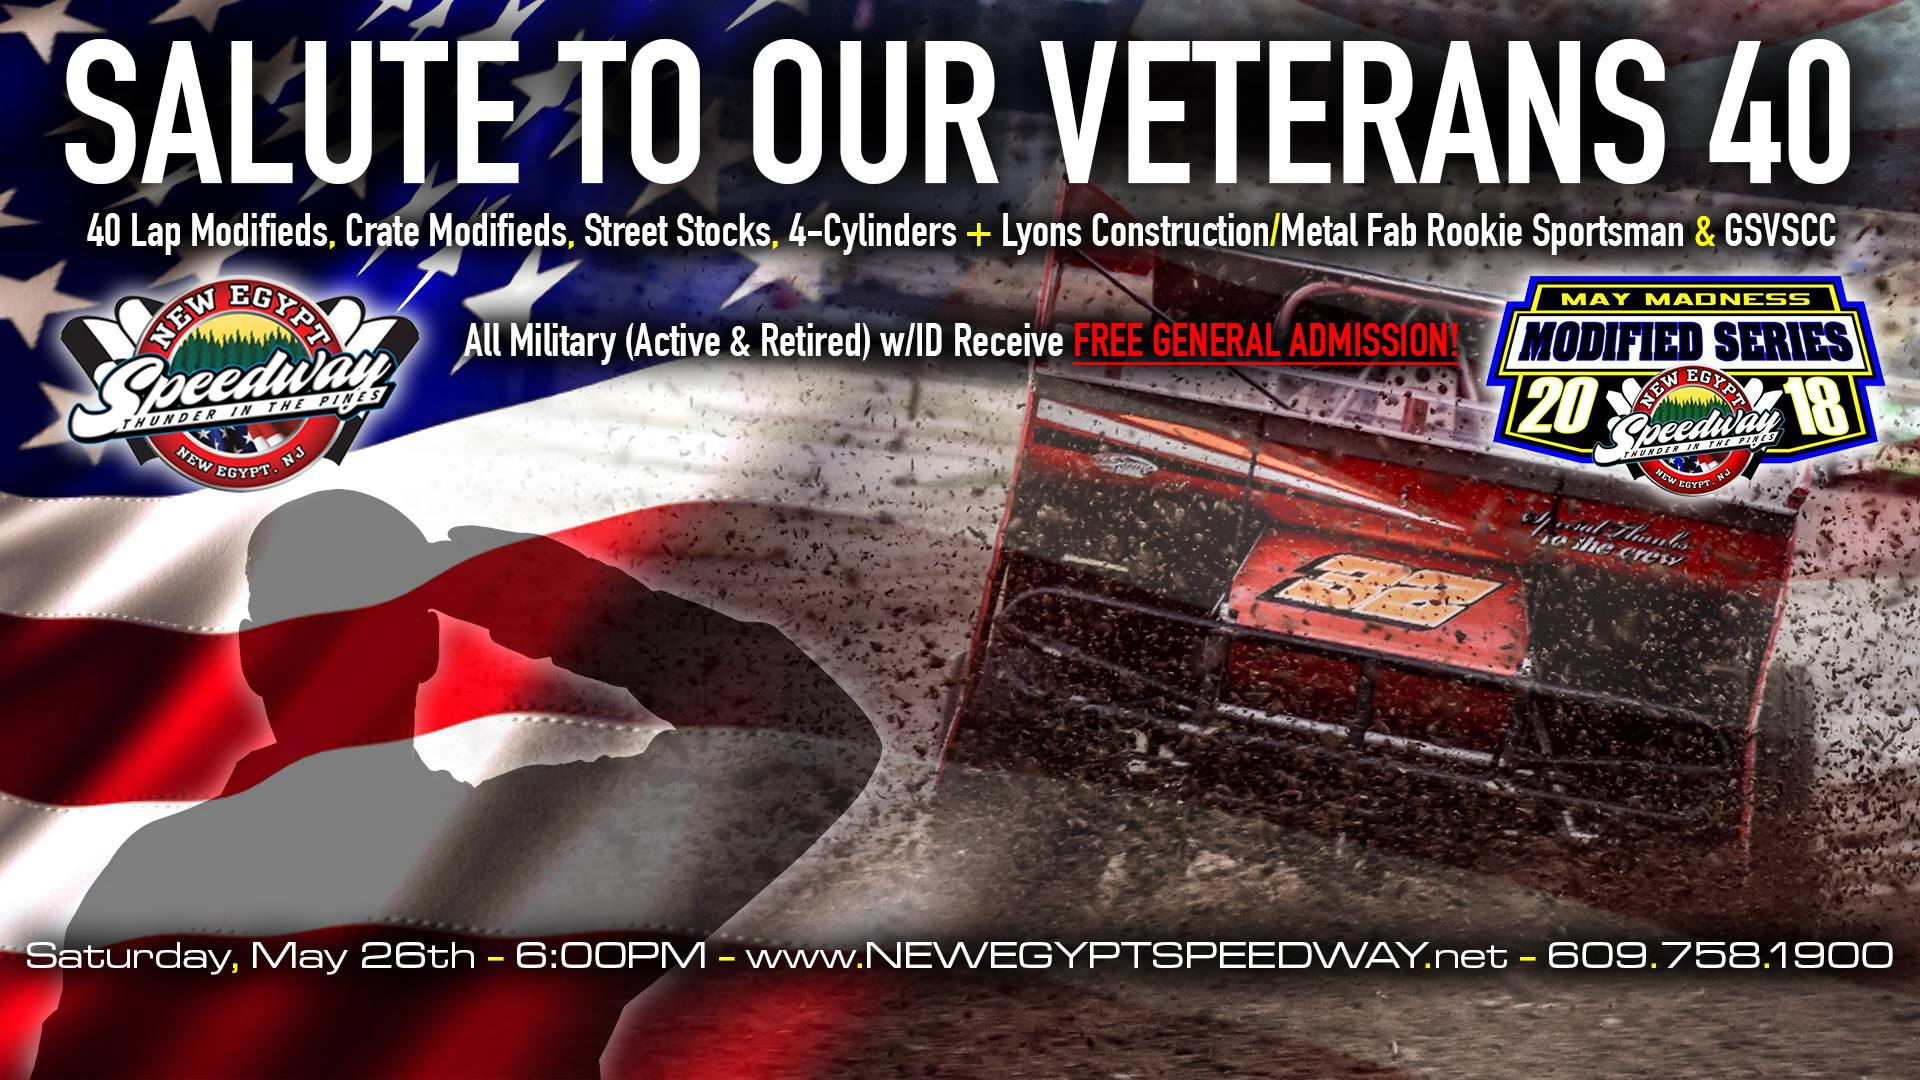 SALUTE TO OUR VETERANS 40 SET FOR SATURDAY MAY 26 AT NEW EGYPT SPEEDWAY; ALL MILITARY ADMITTED FREE